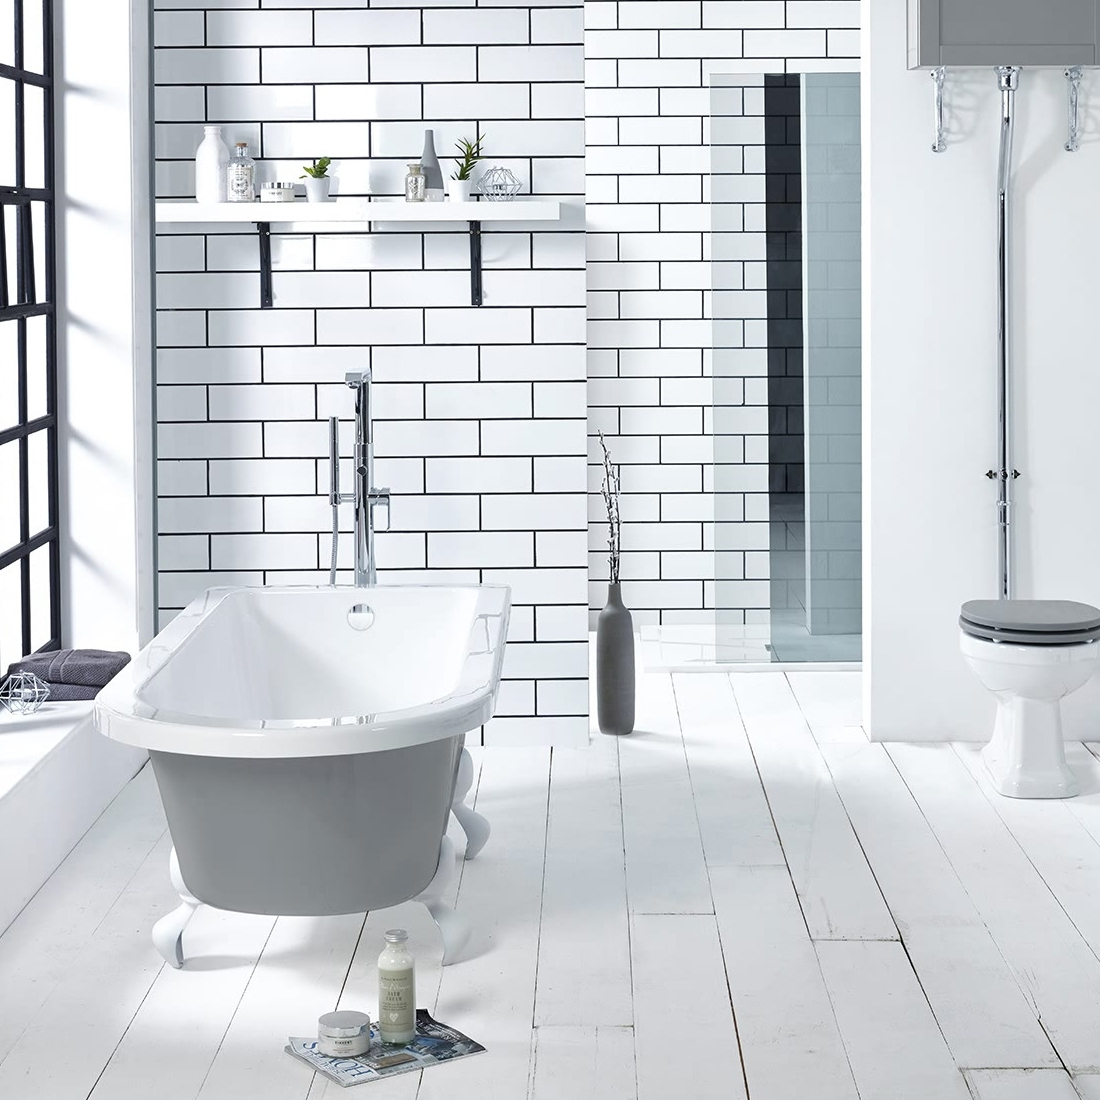 Verona Kilnsey Freestanding Single Ended Bath 1700mm x 750mm Excluding Feet - Dust Grey Outer